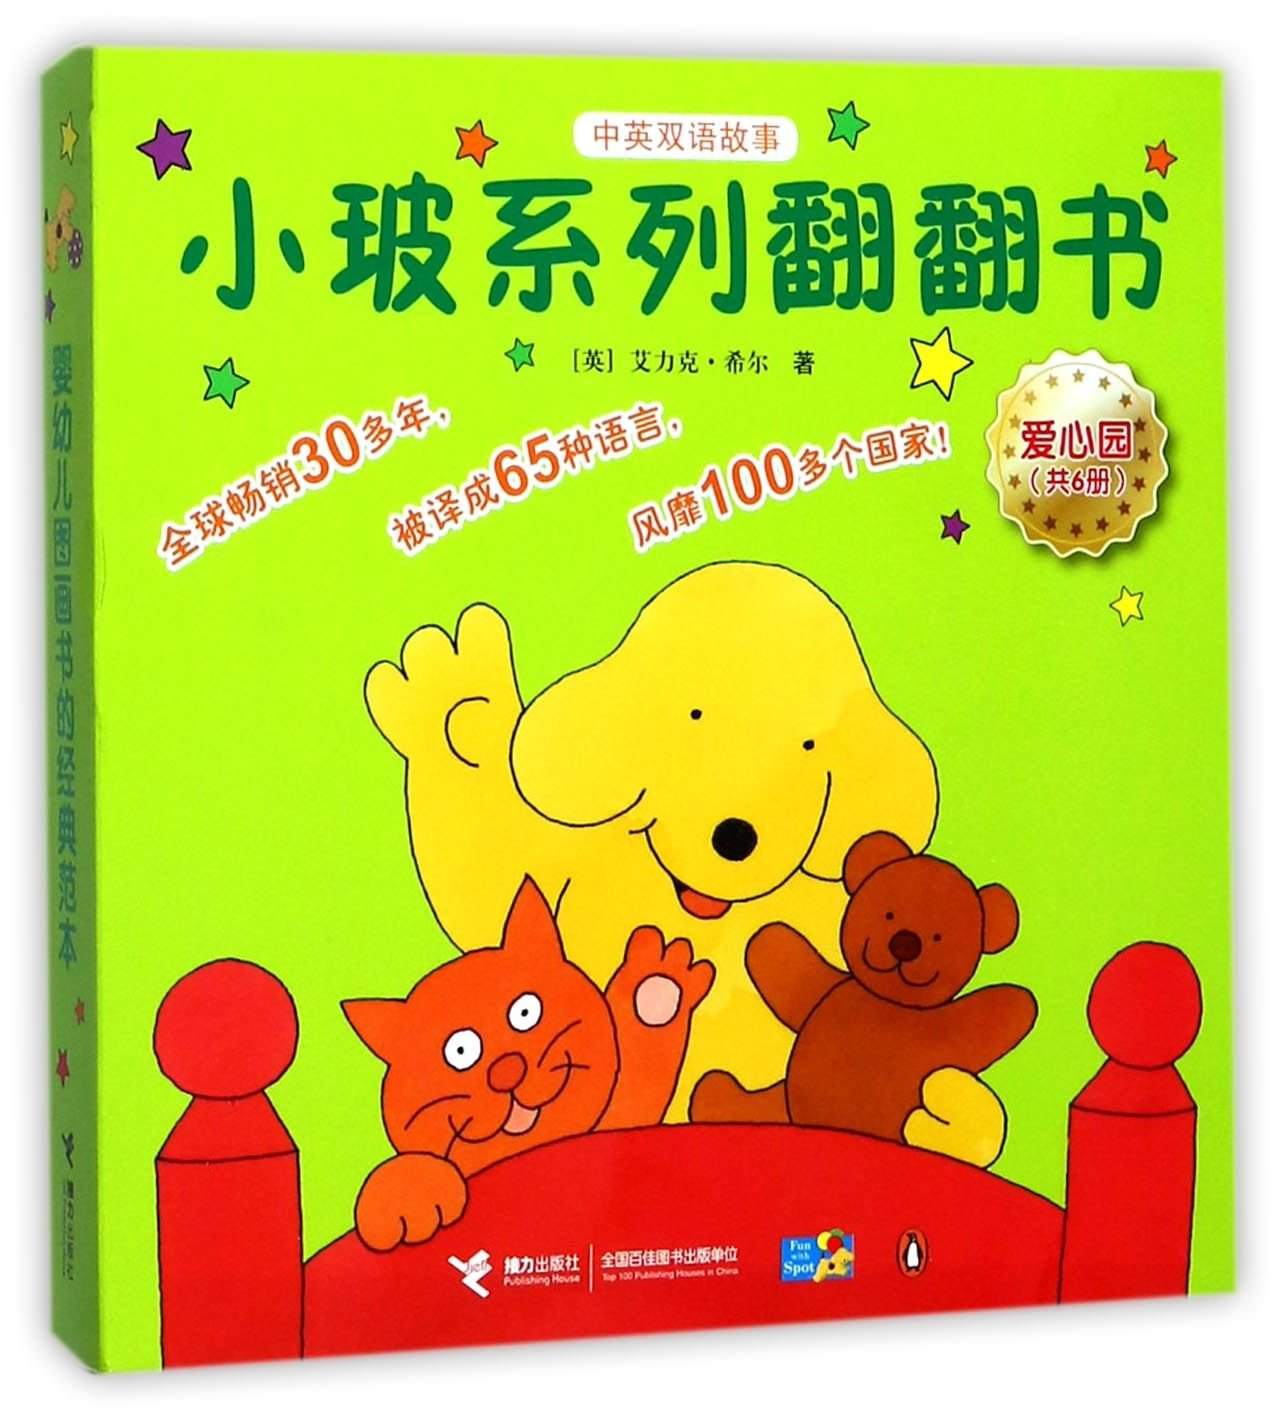 Read Online Spot Lift-the-Flap Books (6 Vols, Chinese-English Bilingual Stories) Text fb2 book